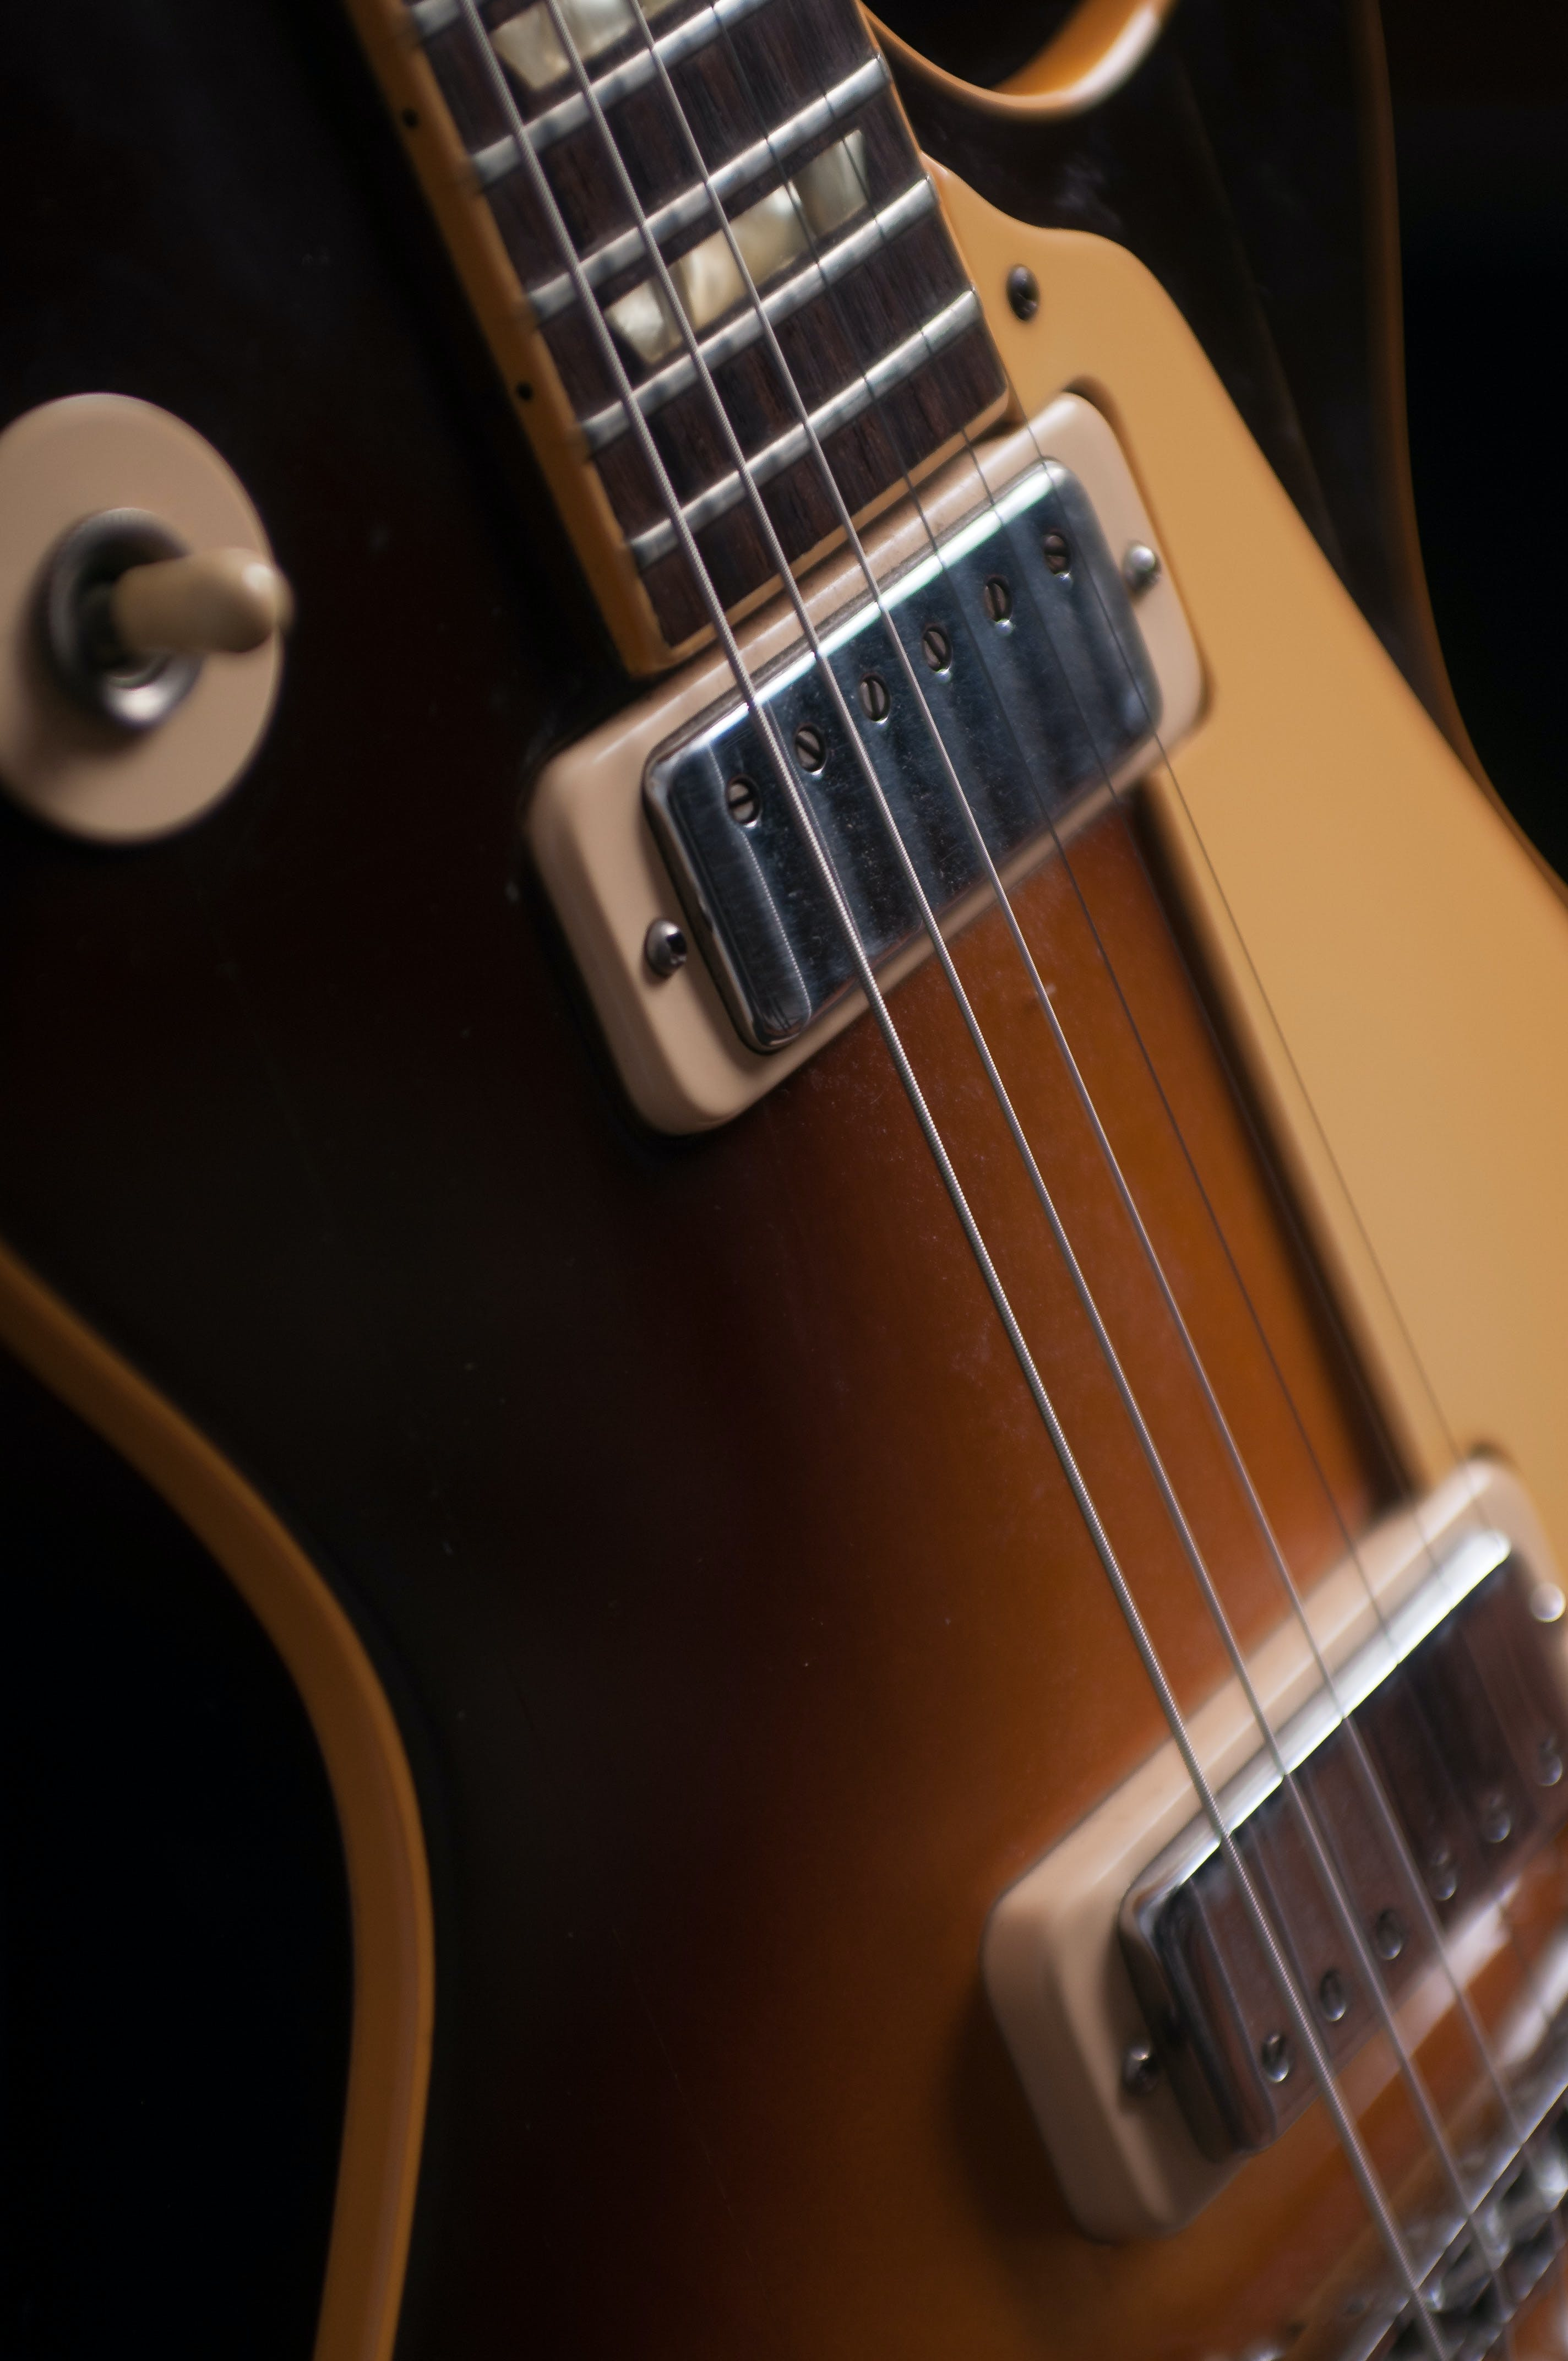 Free stock photo of guitar, Les paul 72 deluxe